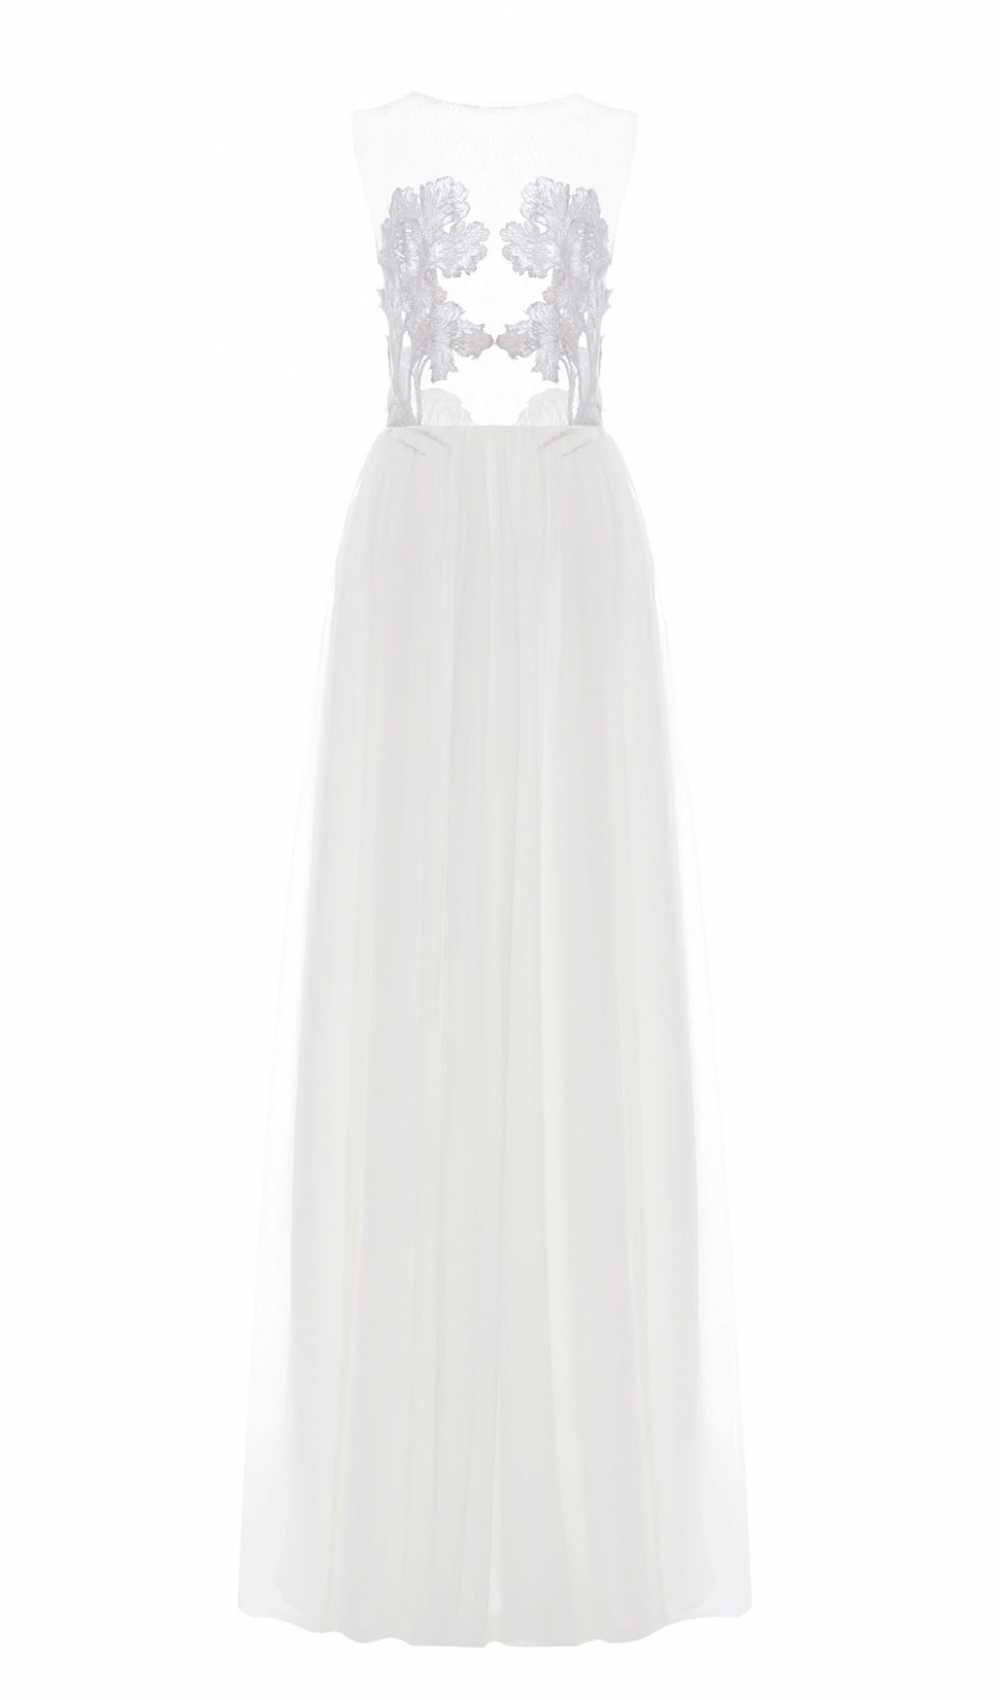 Raffiniertes Brautkleid White Iris Illusion Dress von Kaviar Gauche